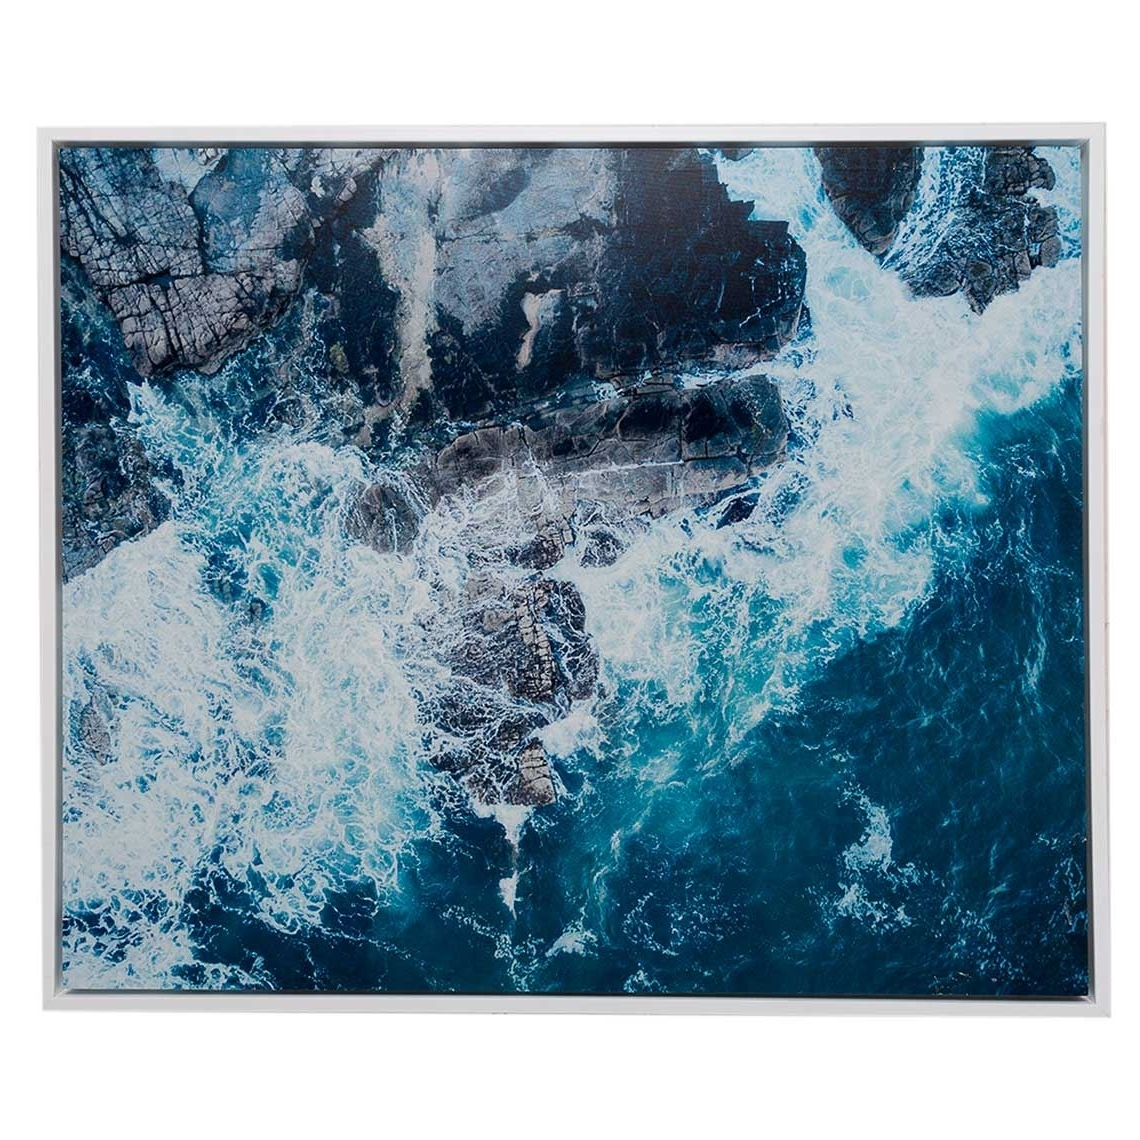 Mandurah Canvas Wall Art For Most Popular Neeks & Gaston Framed Canvas 120X100Cm Mooloolaba Waves (View 8 of 15)